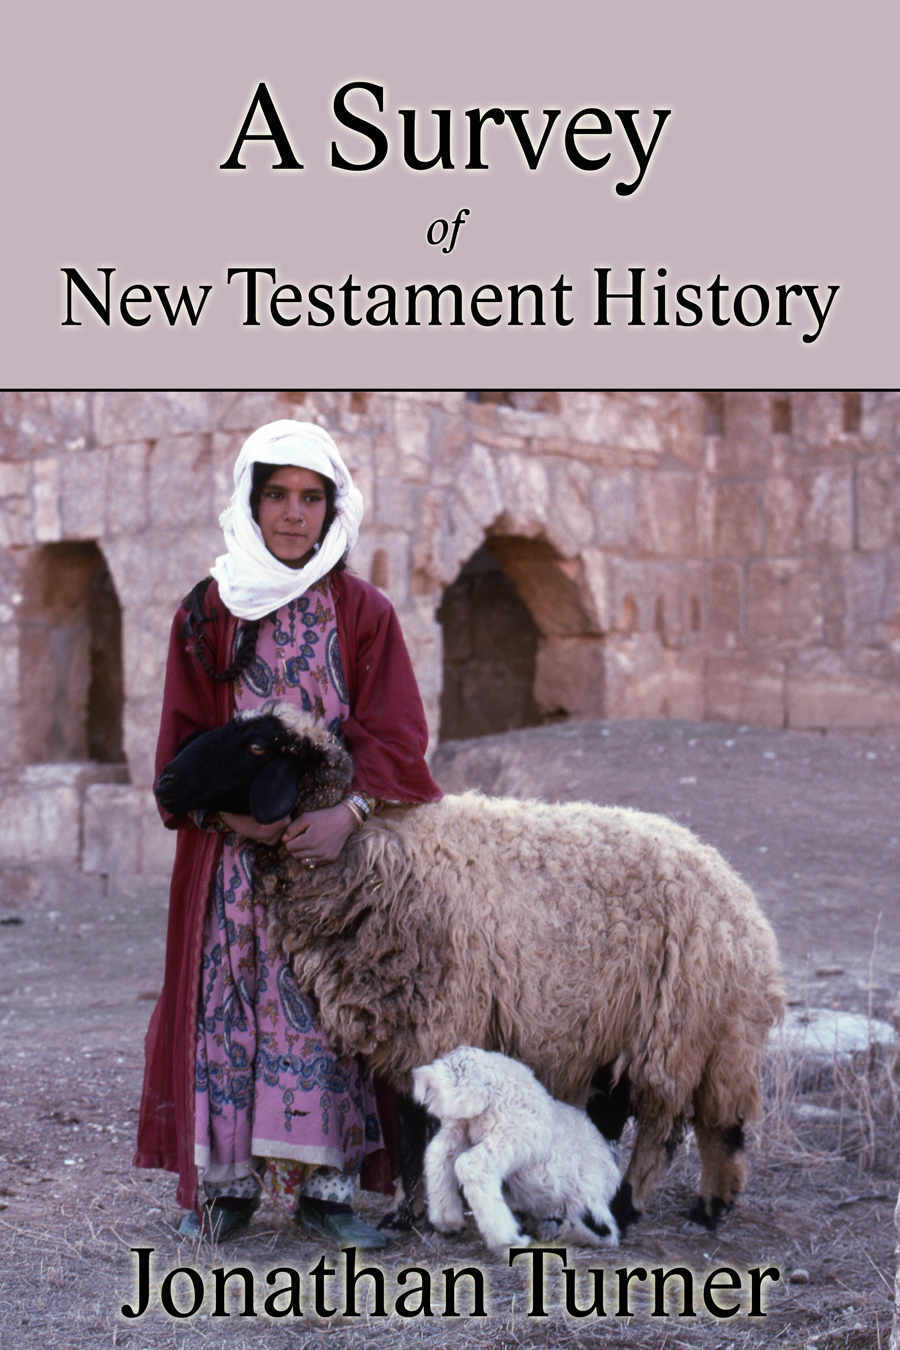 A Survey of New Testament History